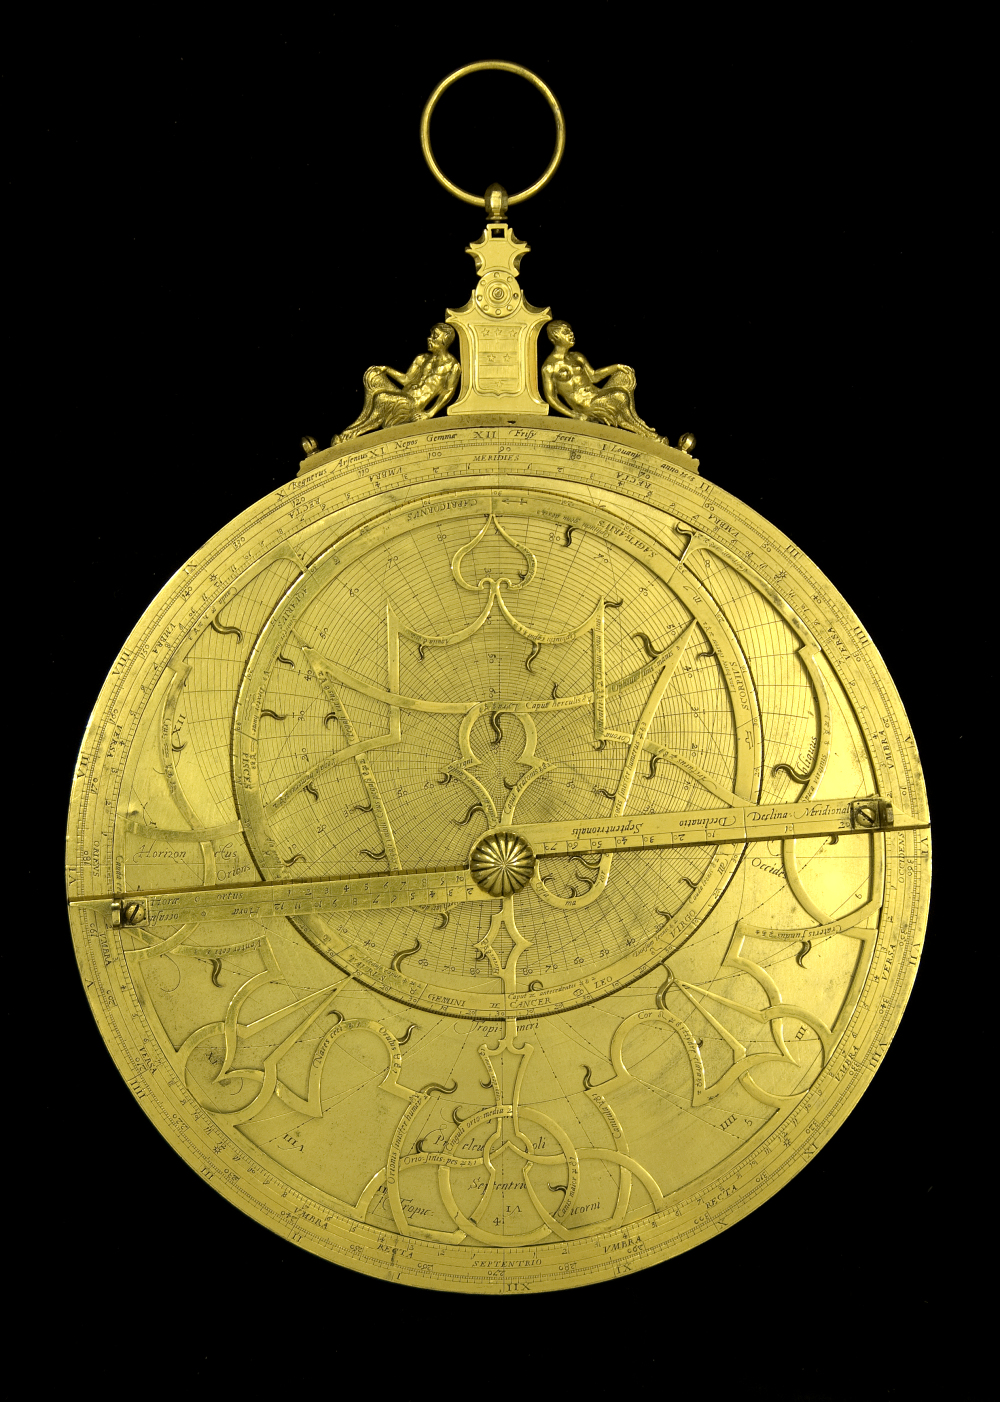 preview image for Astrolabe, by Regnerus Arsenius, Louvain, 1565